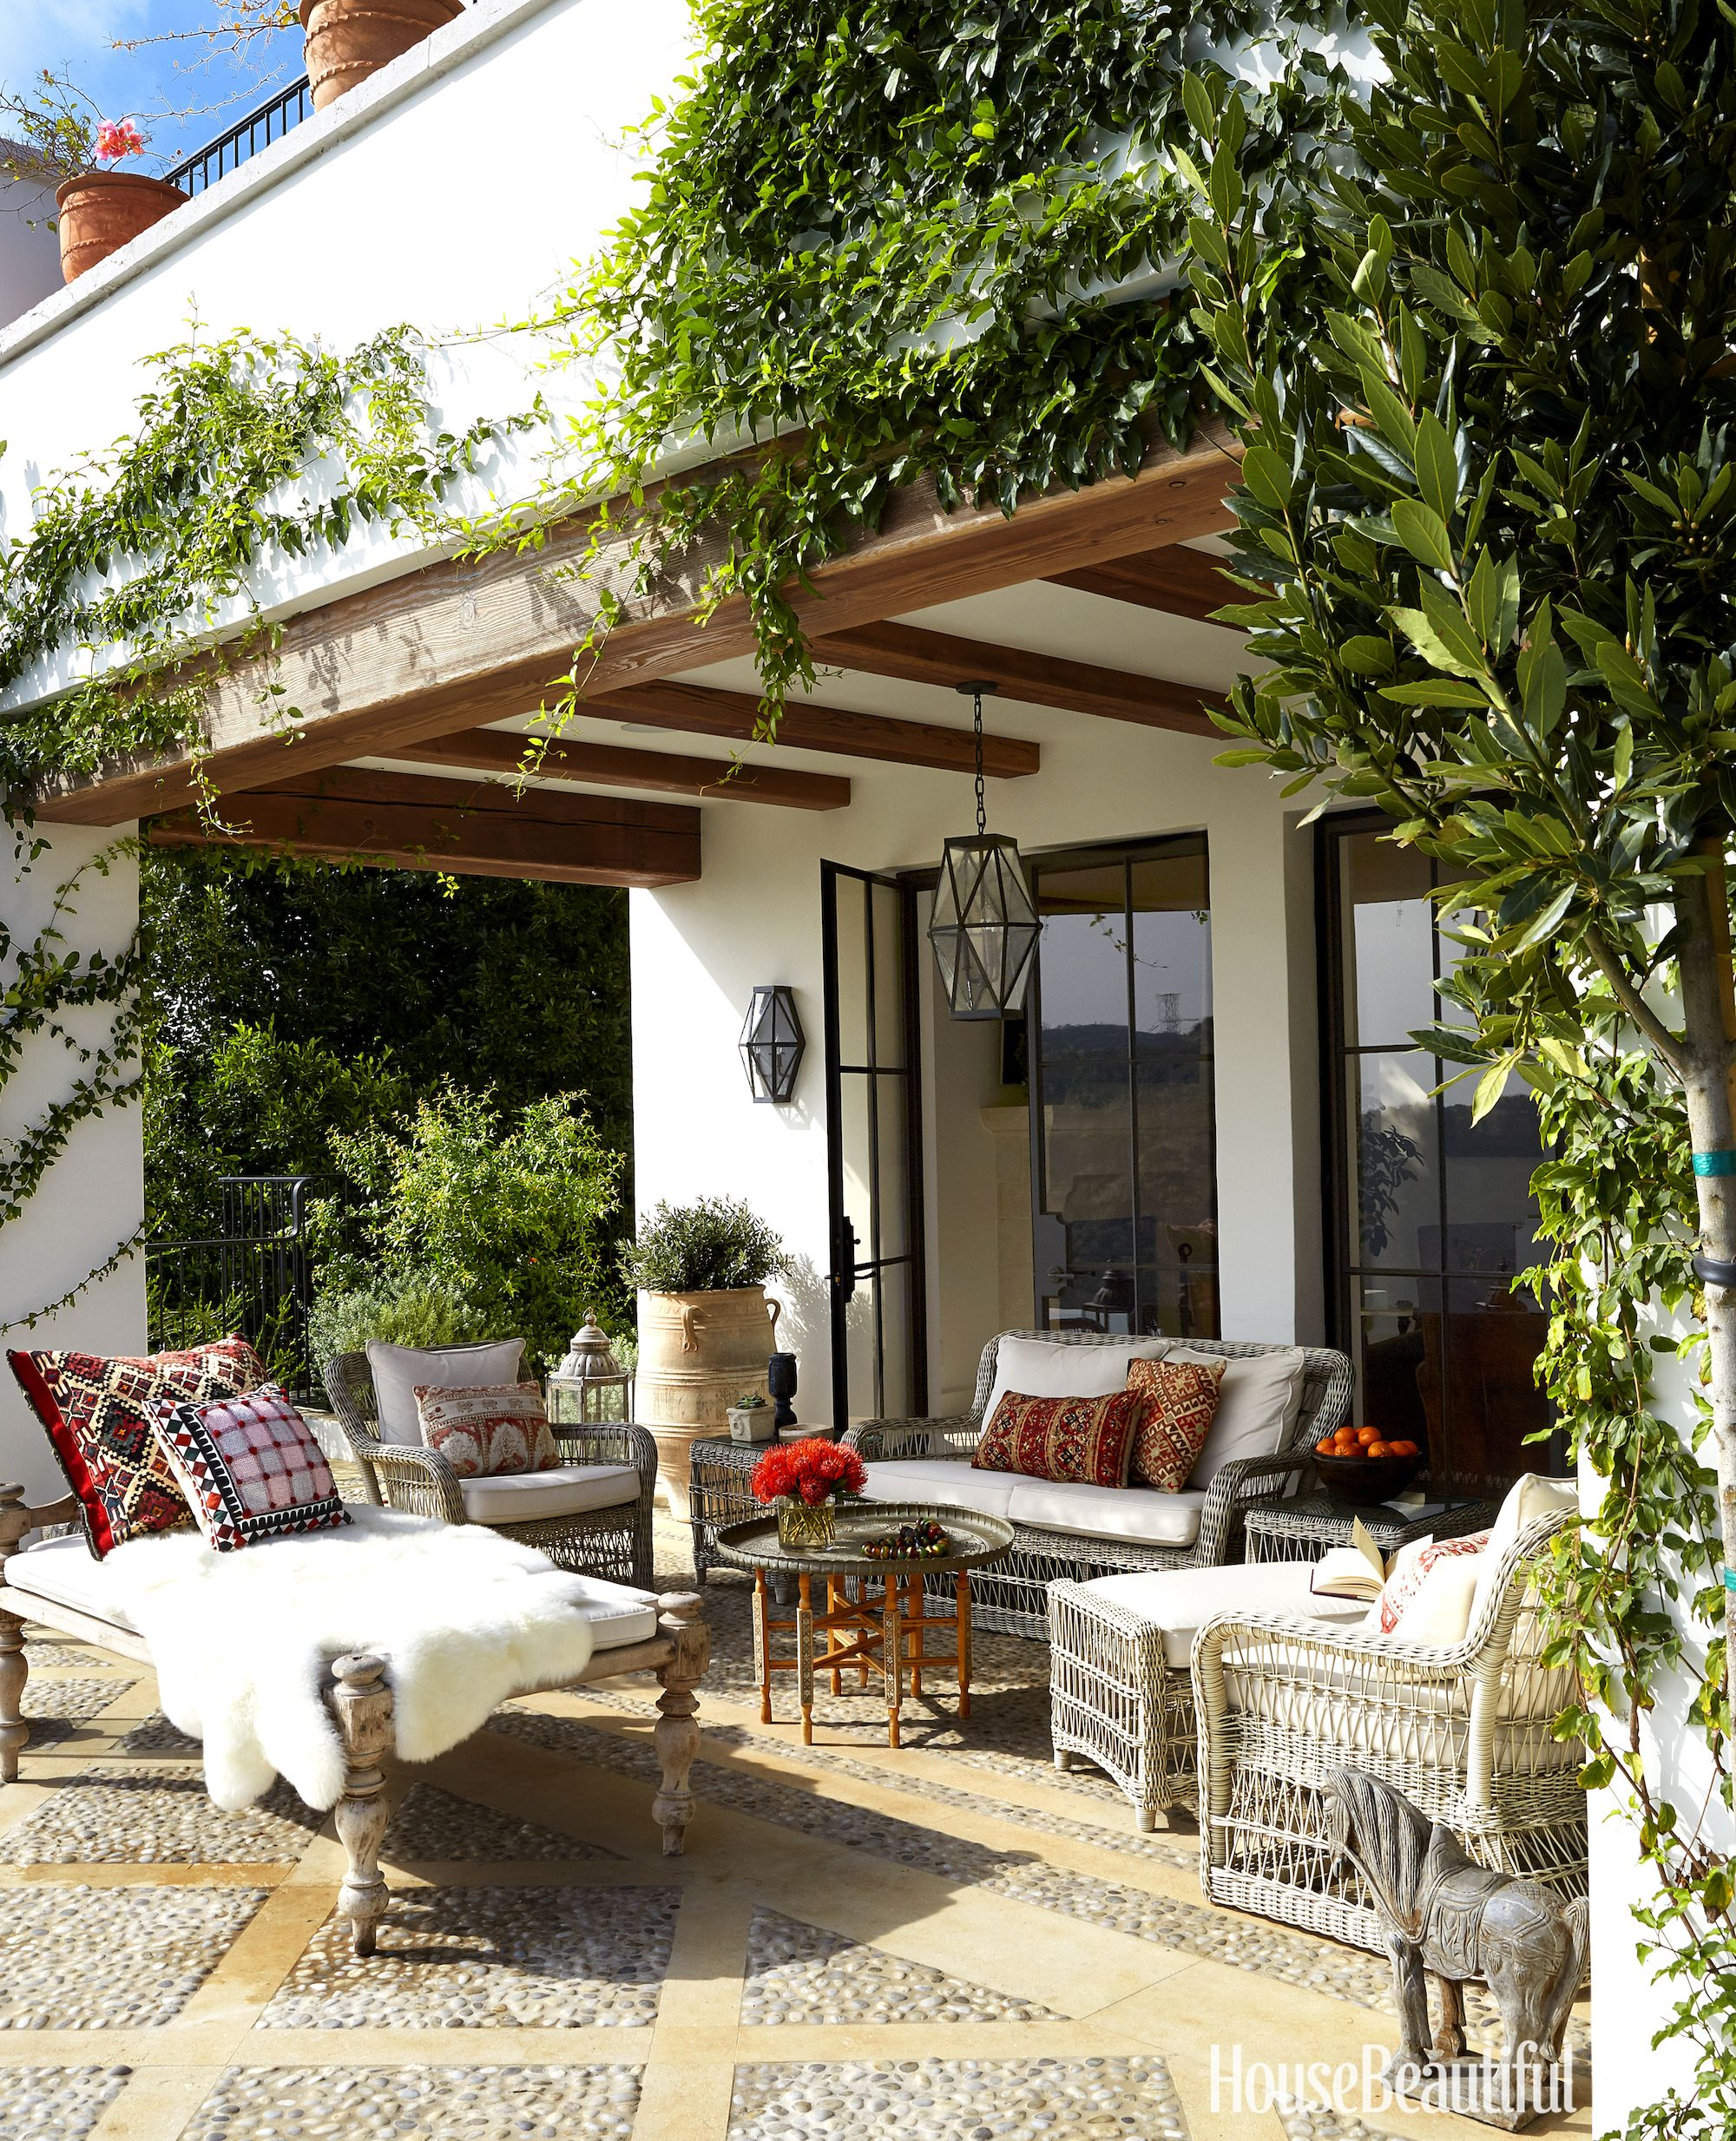 87 patio and outdoor room design ideas and photos - Outdoor Design Ideas